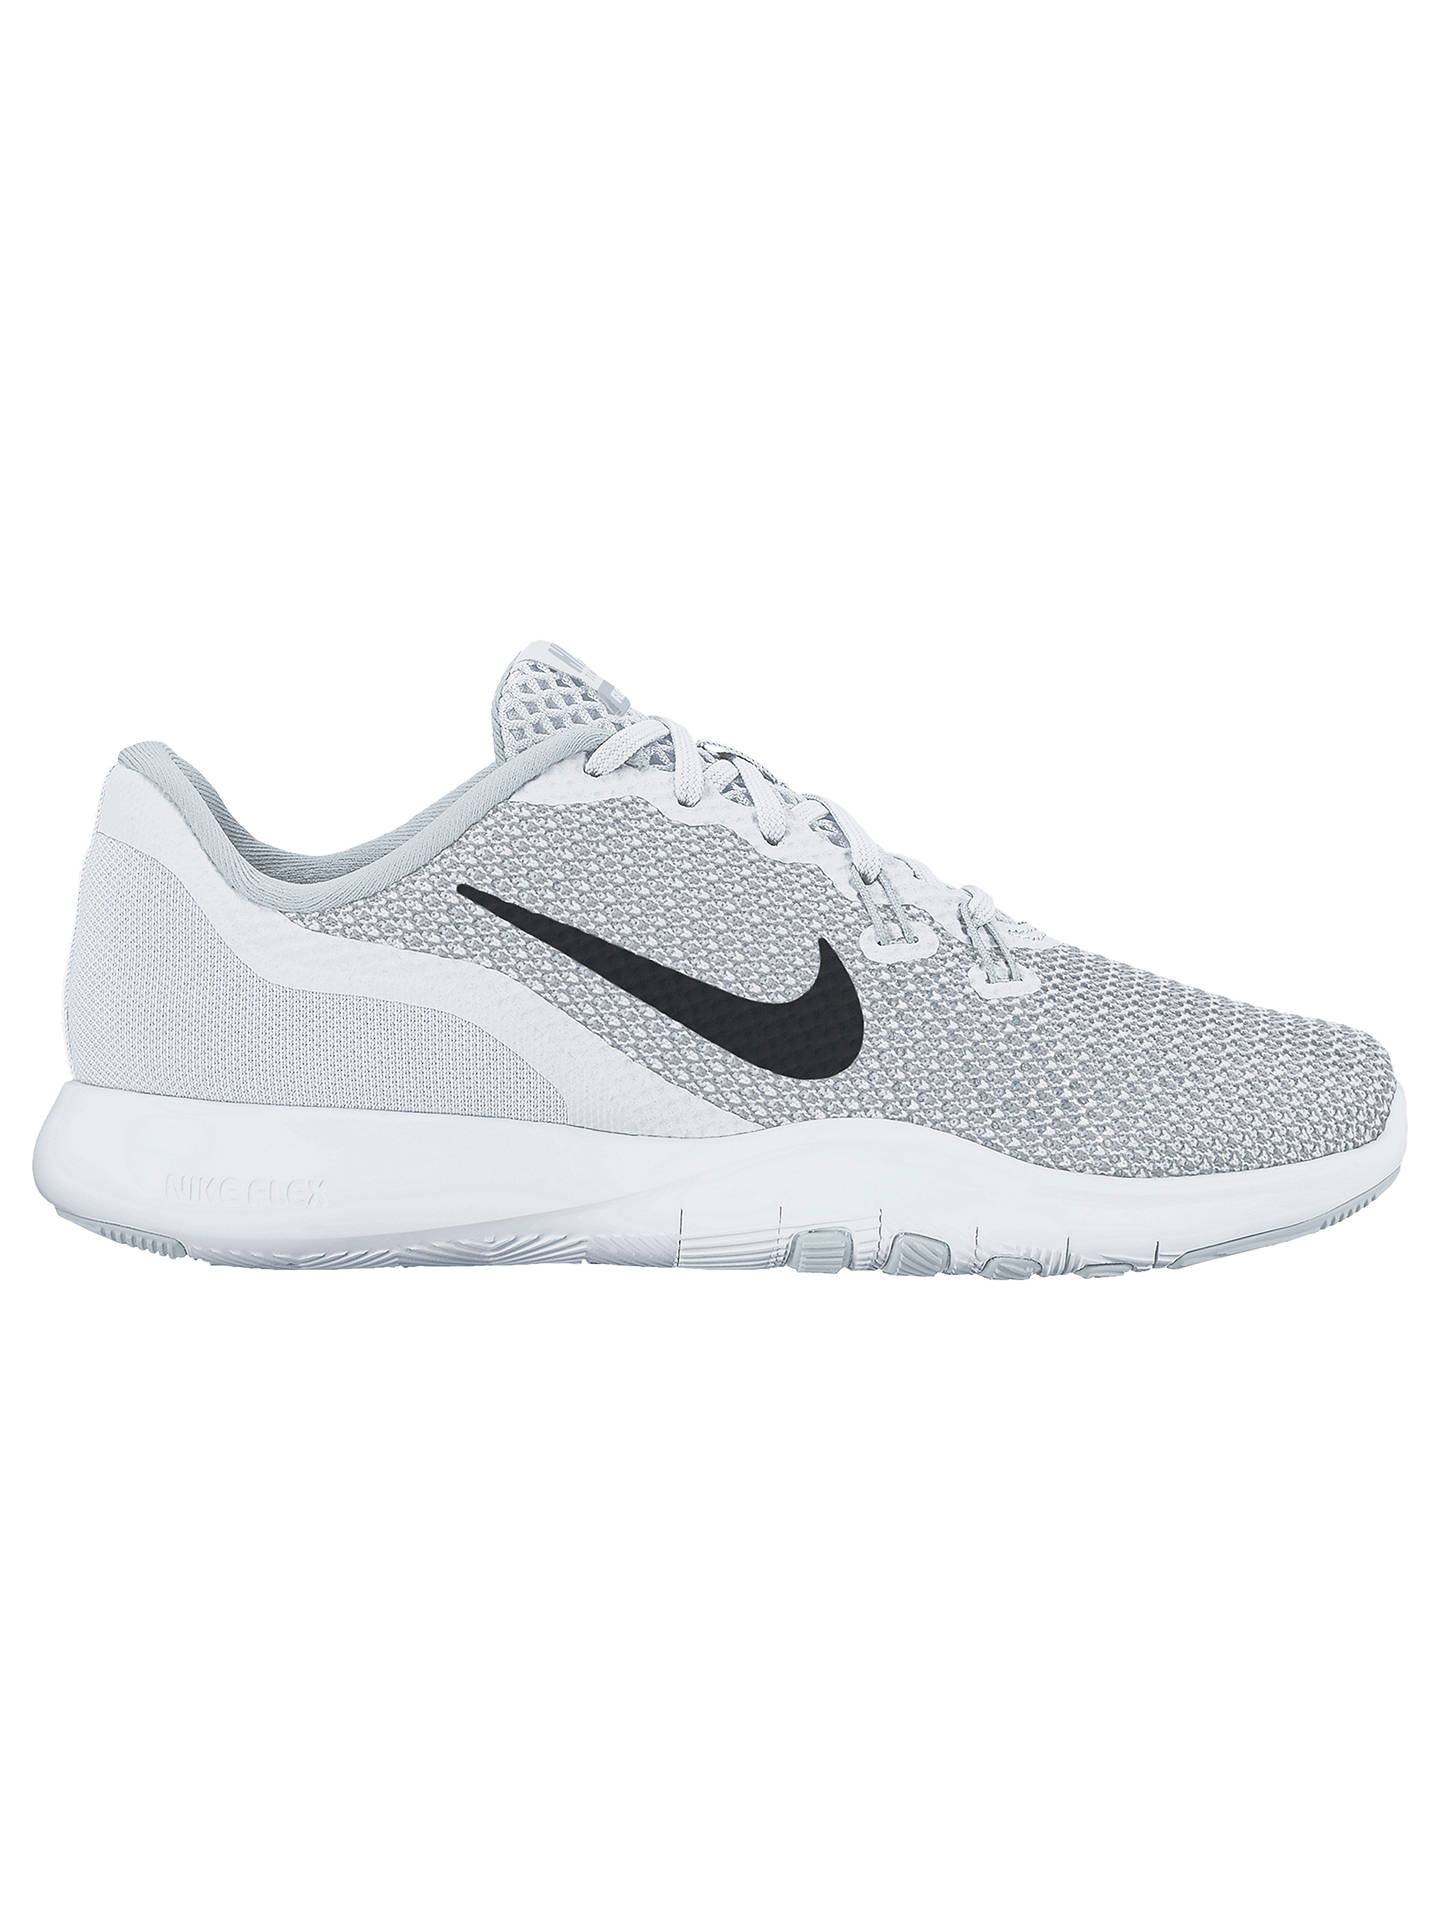 36b1123fdb7e Buy Nike Flex Trainer 7 Women s Cross Trainers